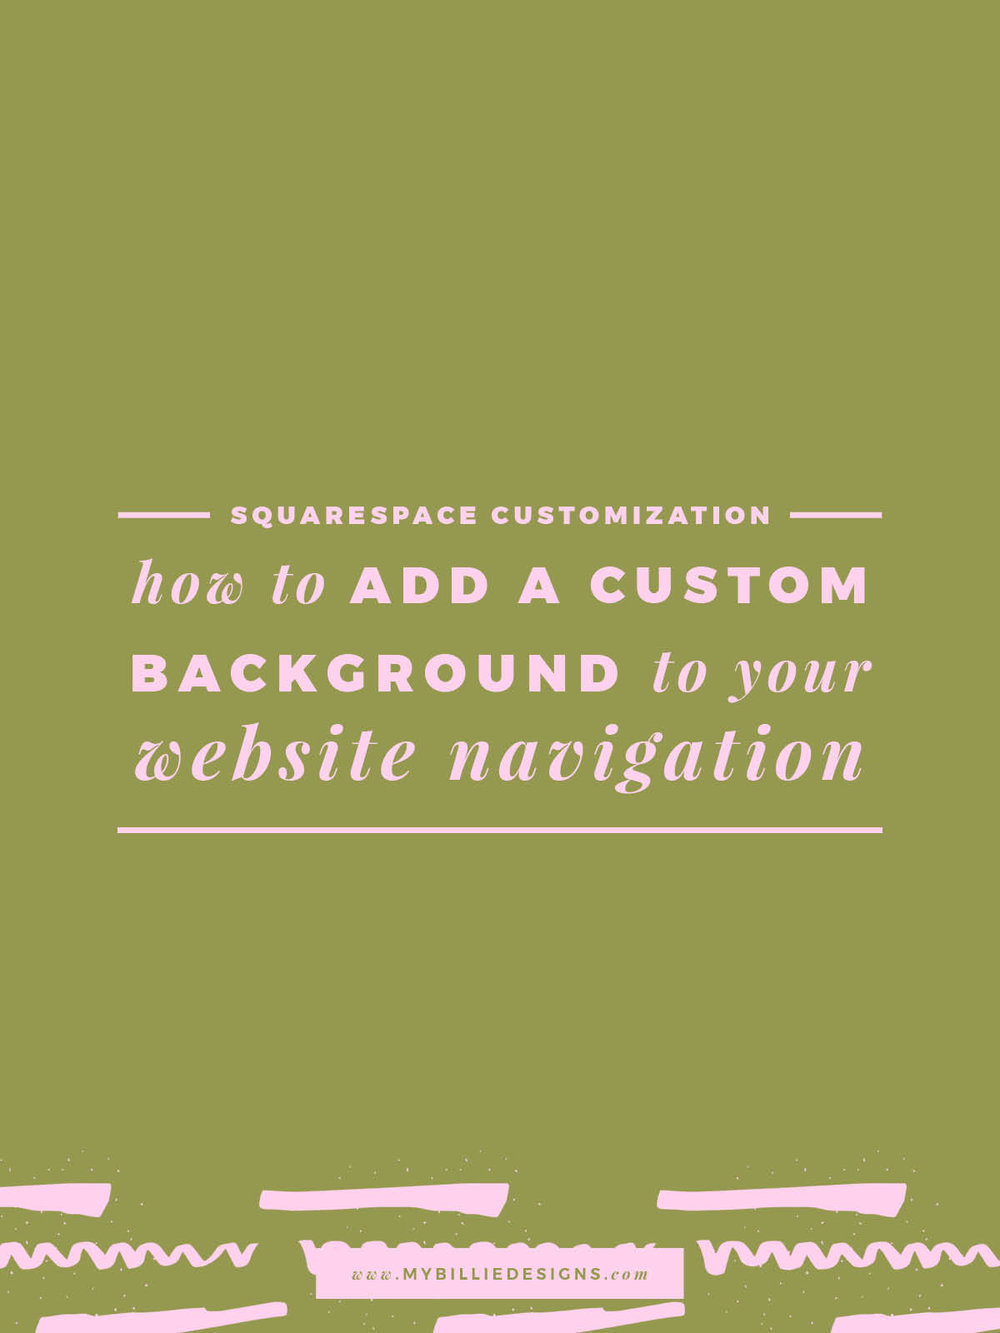 Squarespace Customization: How To Add A Customer Background To Your Site Navigation --> Click through for full post!